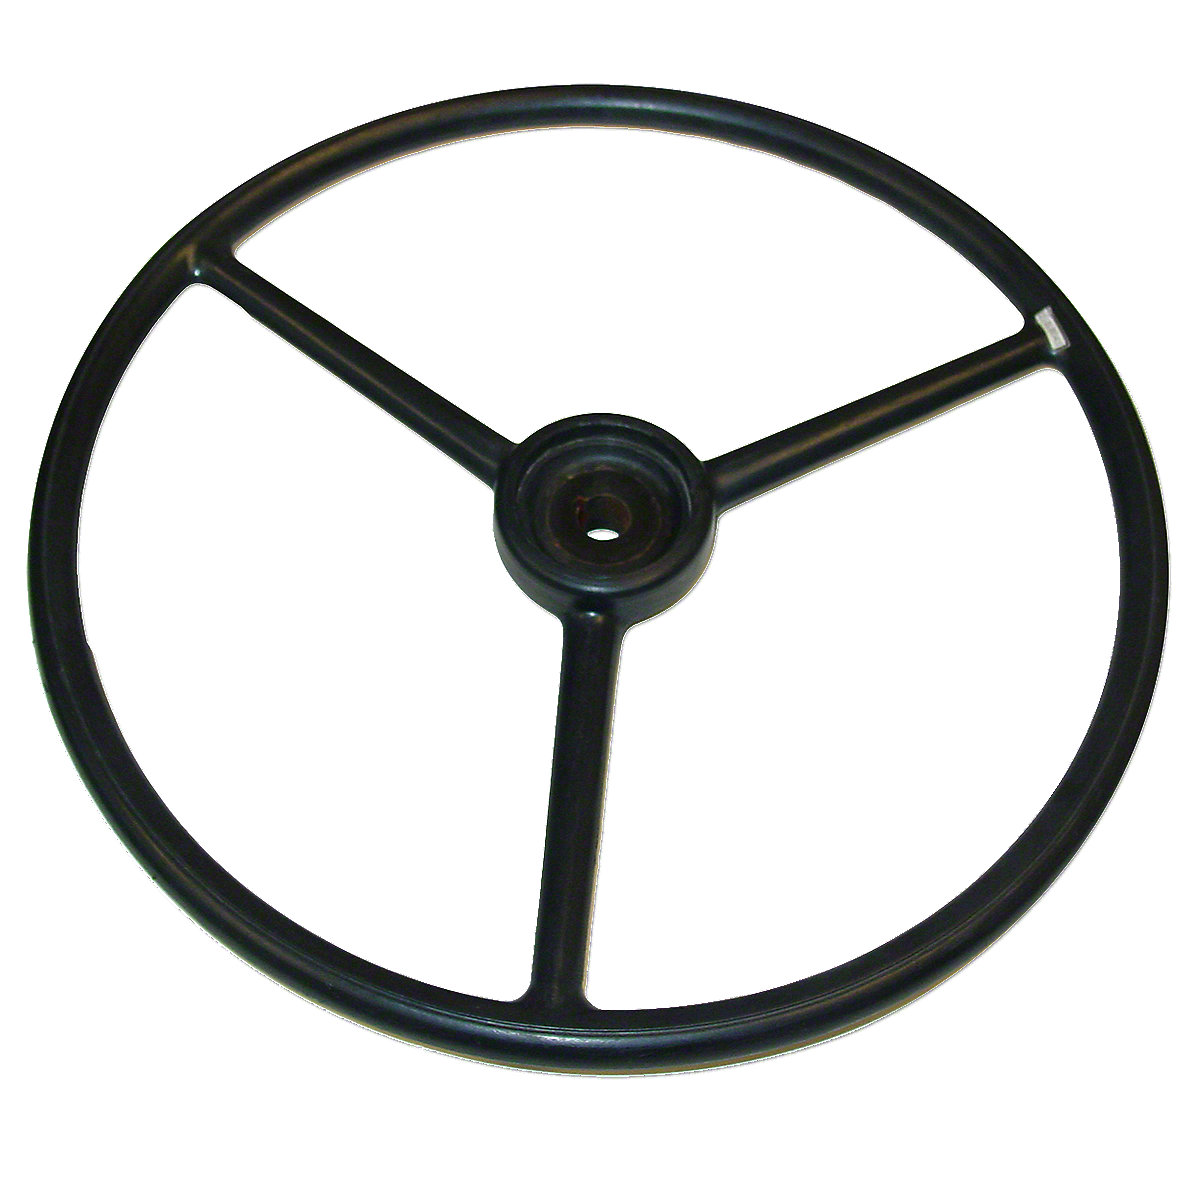 Steering Wheel For Massey Ferguson Tractors.